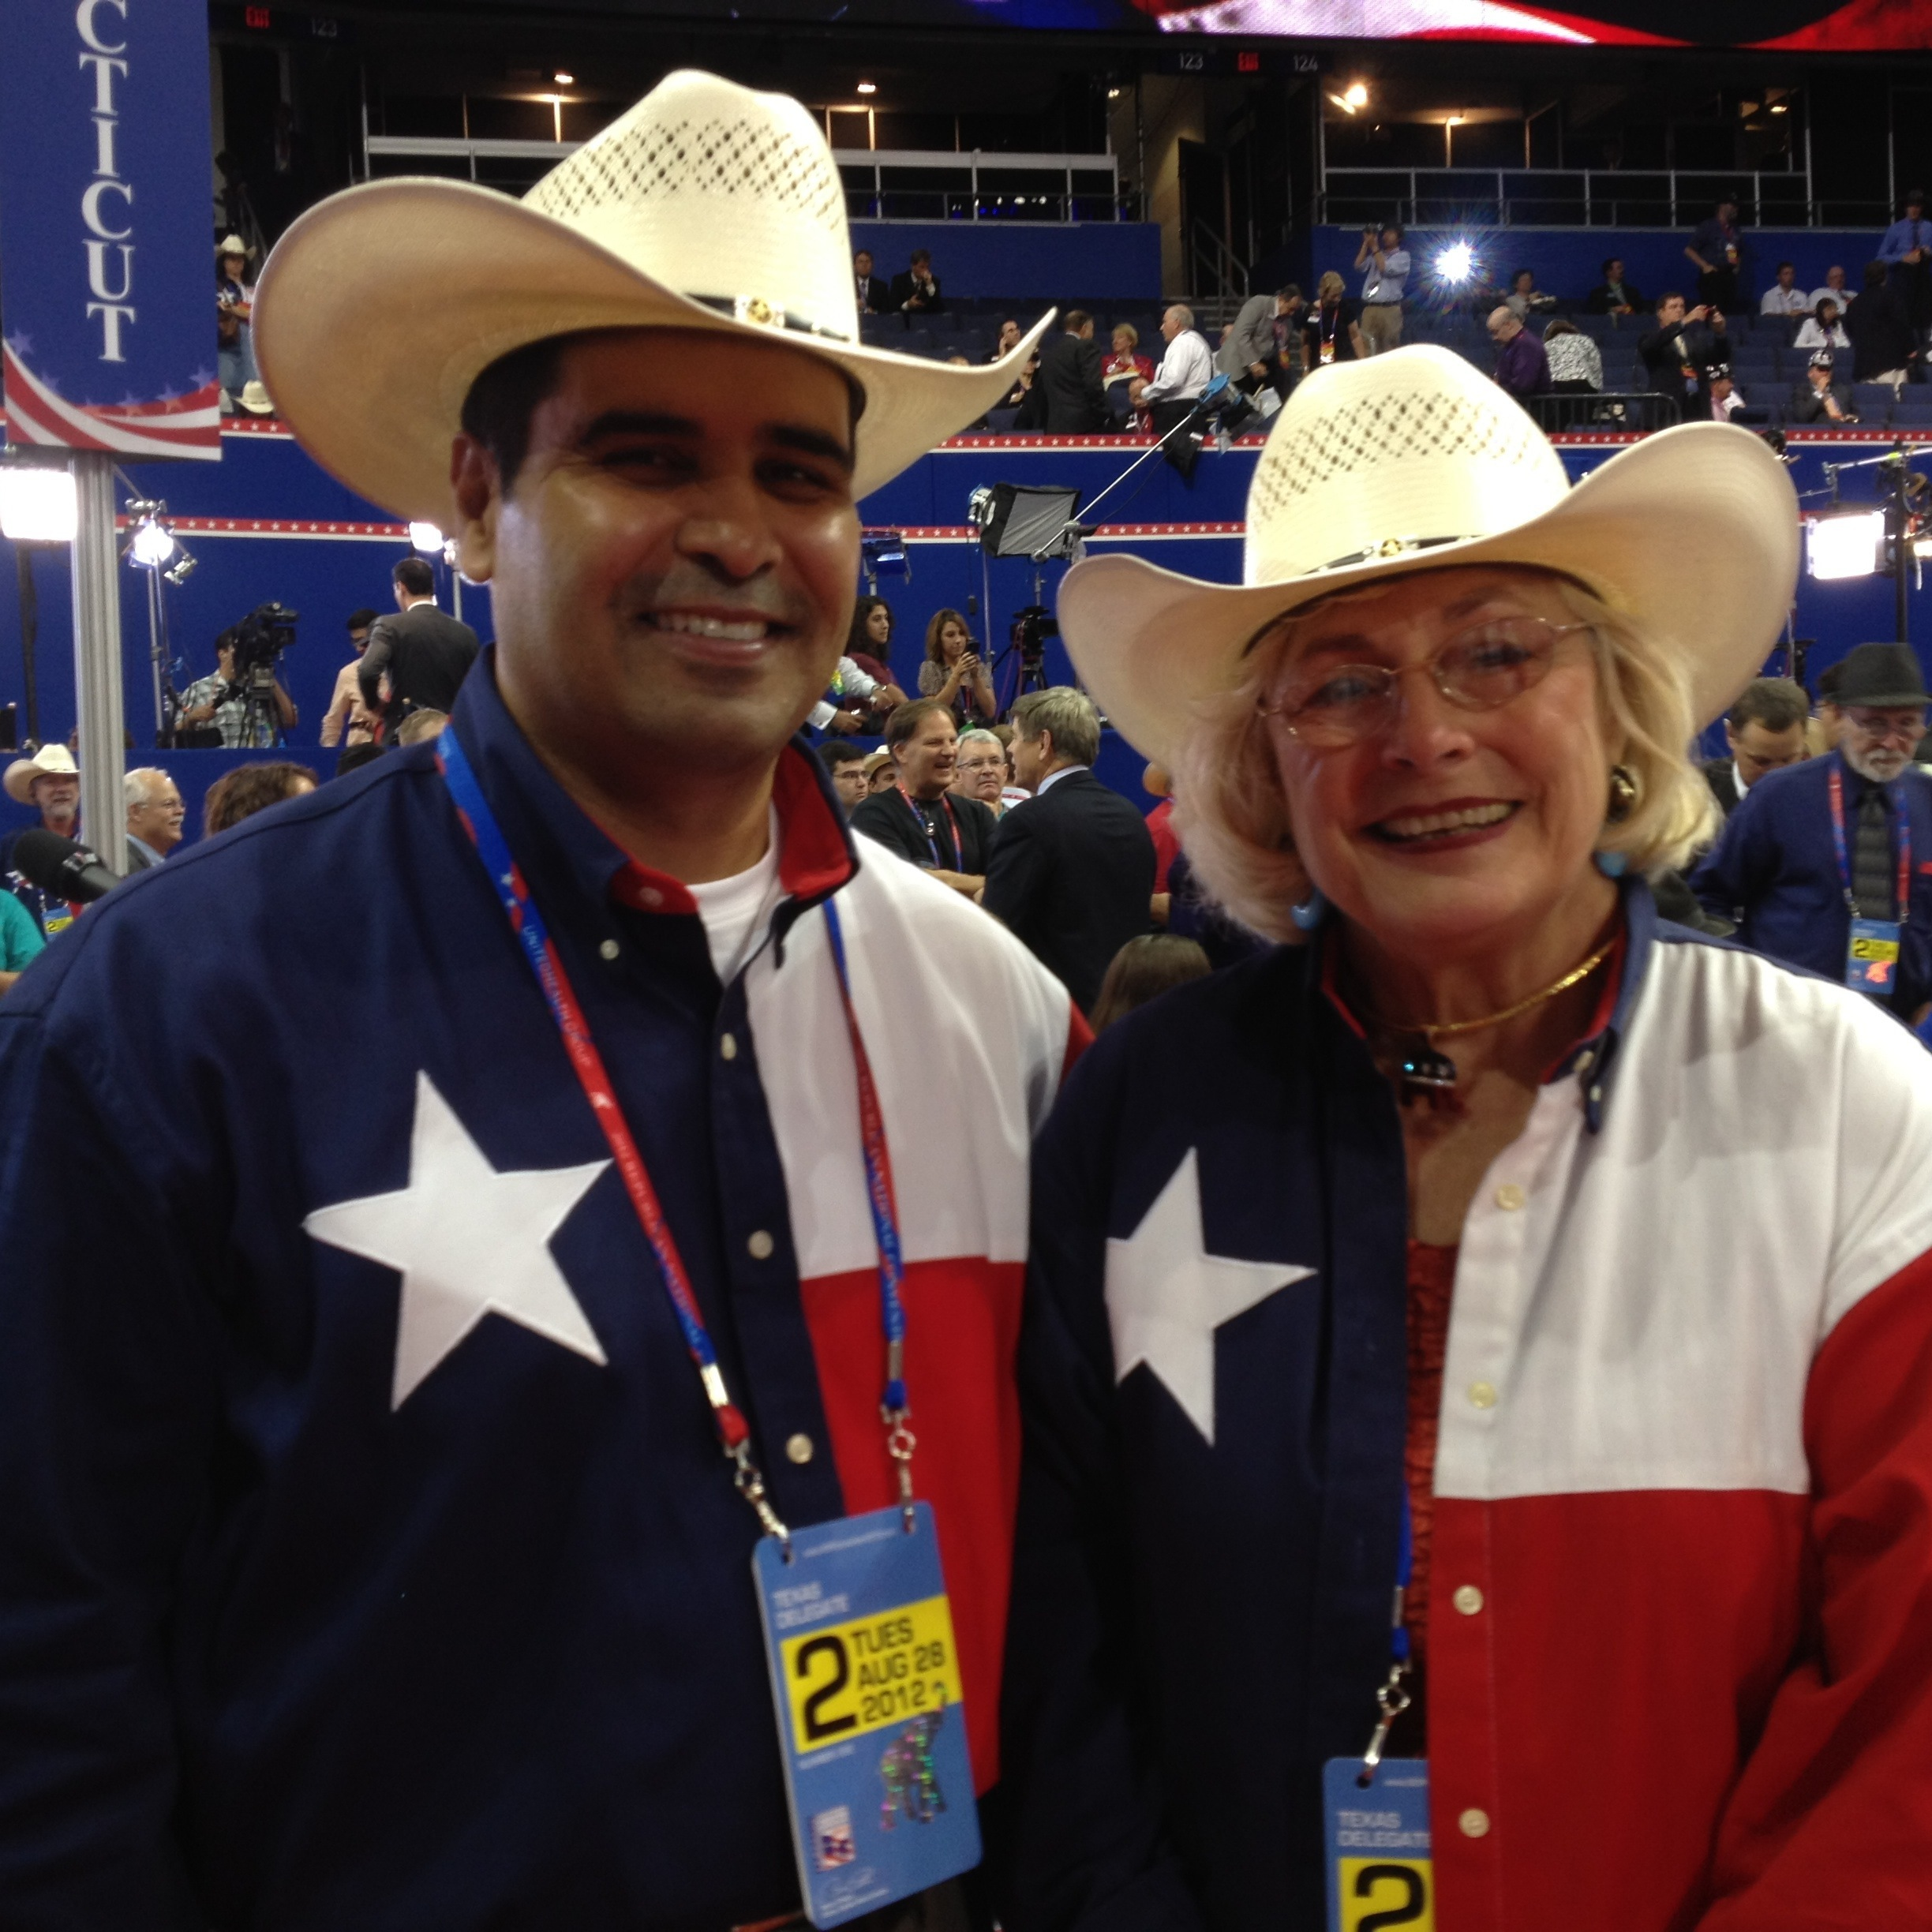 Howdy from Tampa: Texas delegates Gil Hernandez, 43, of Corpus Christi, and JoAnn McCracken, 73, of Houston, were proudly showing their colors Tuesday at the Republican National Convention.